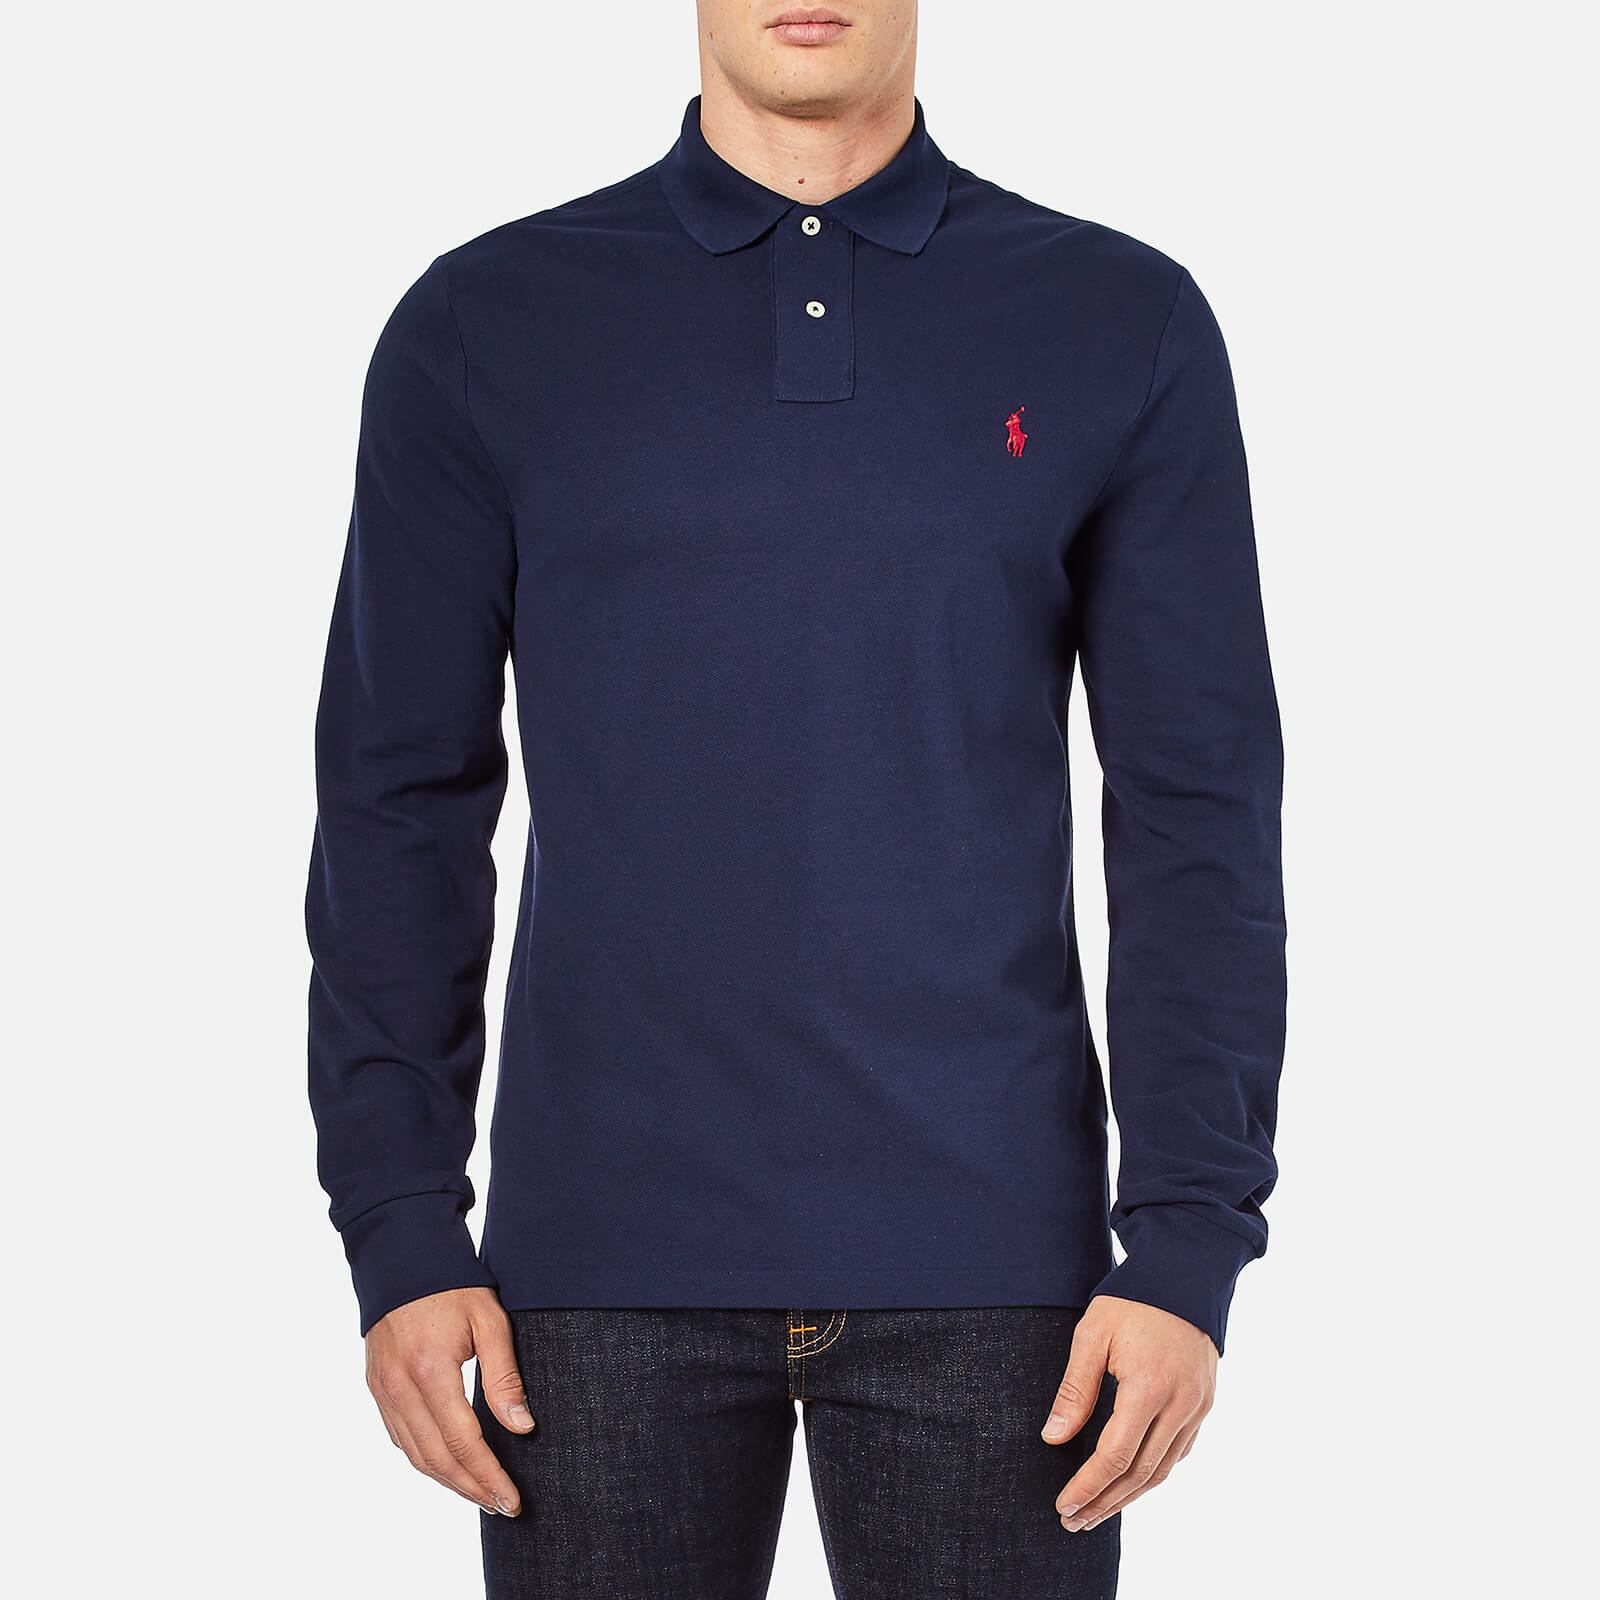 b82f6acb Polo Ralph Lauren Men's Slim Fit Long Sleeved Polo Shirt - Newport Navy - Free  UK Delivery over £50